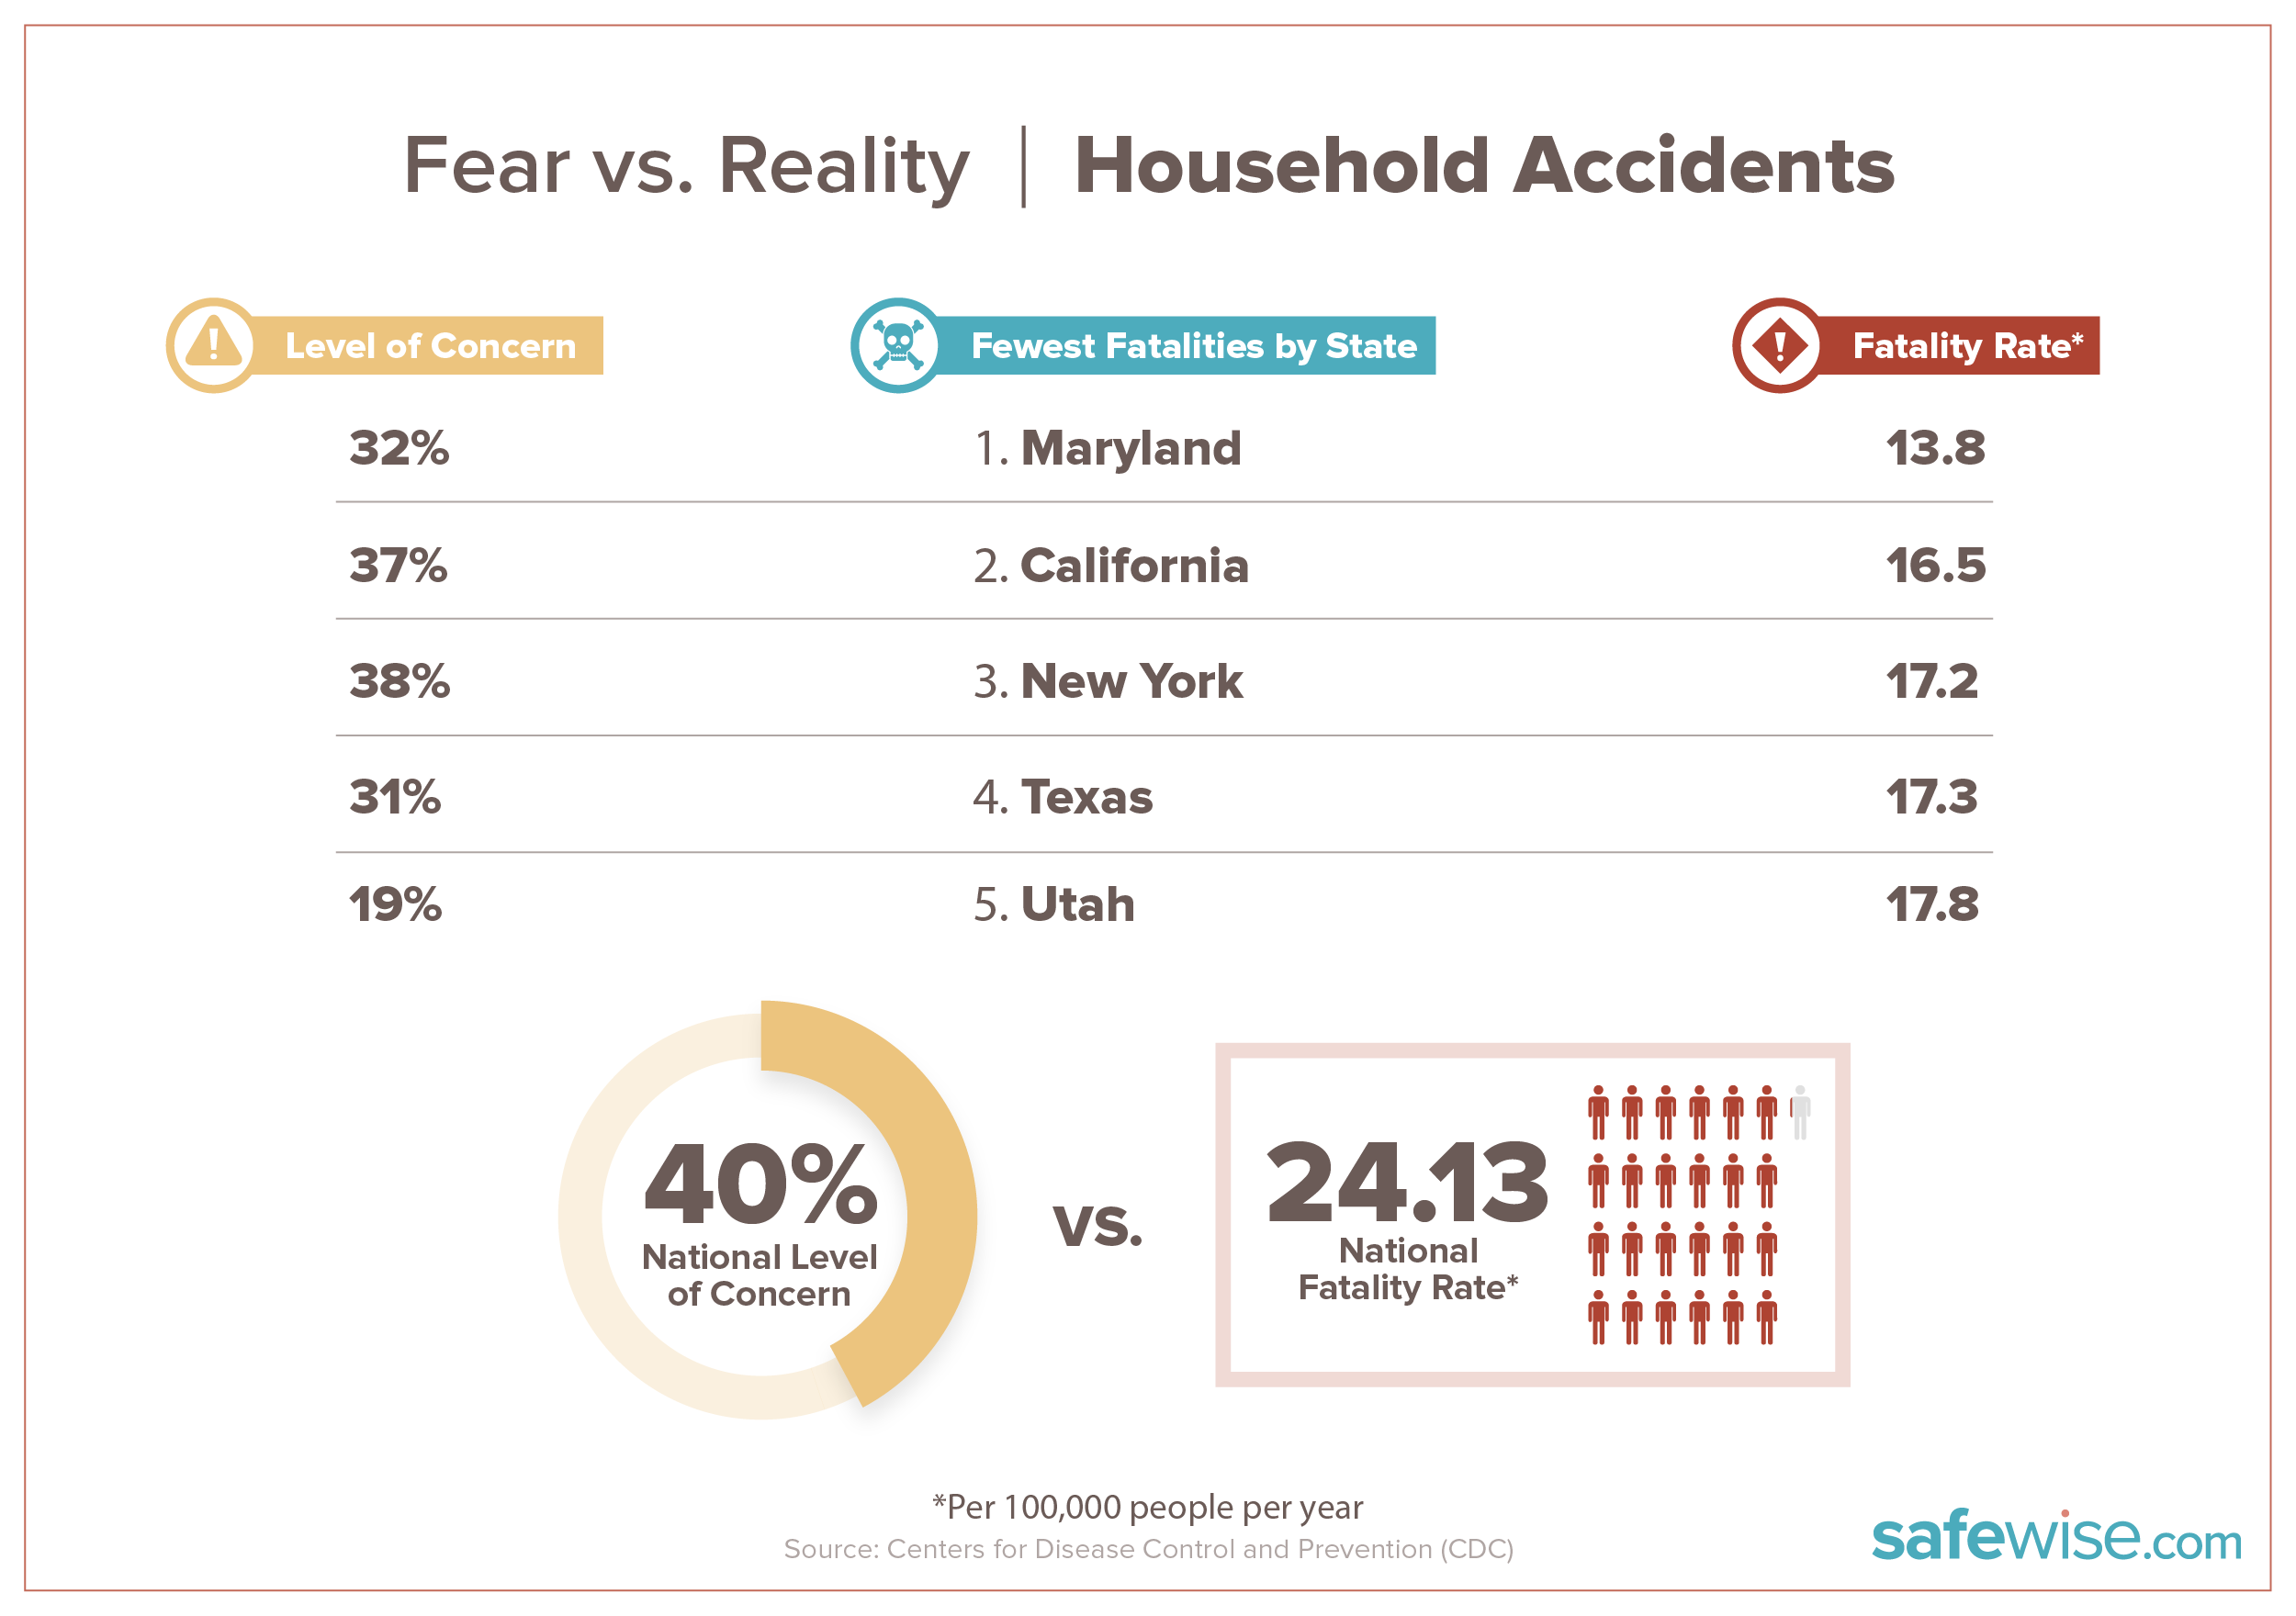 graphic showing fatality rate and level of concern for states with lowest number of household accidents